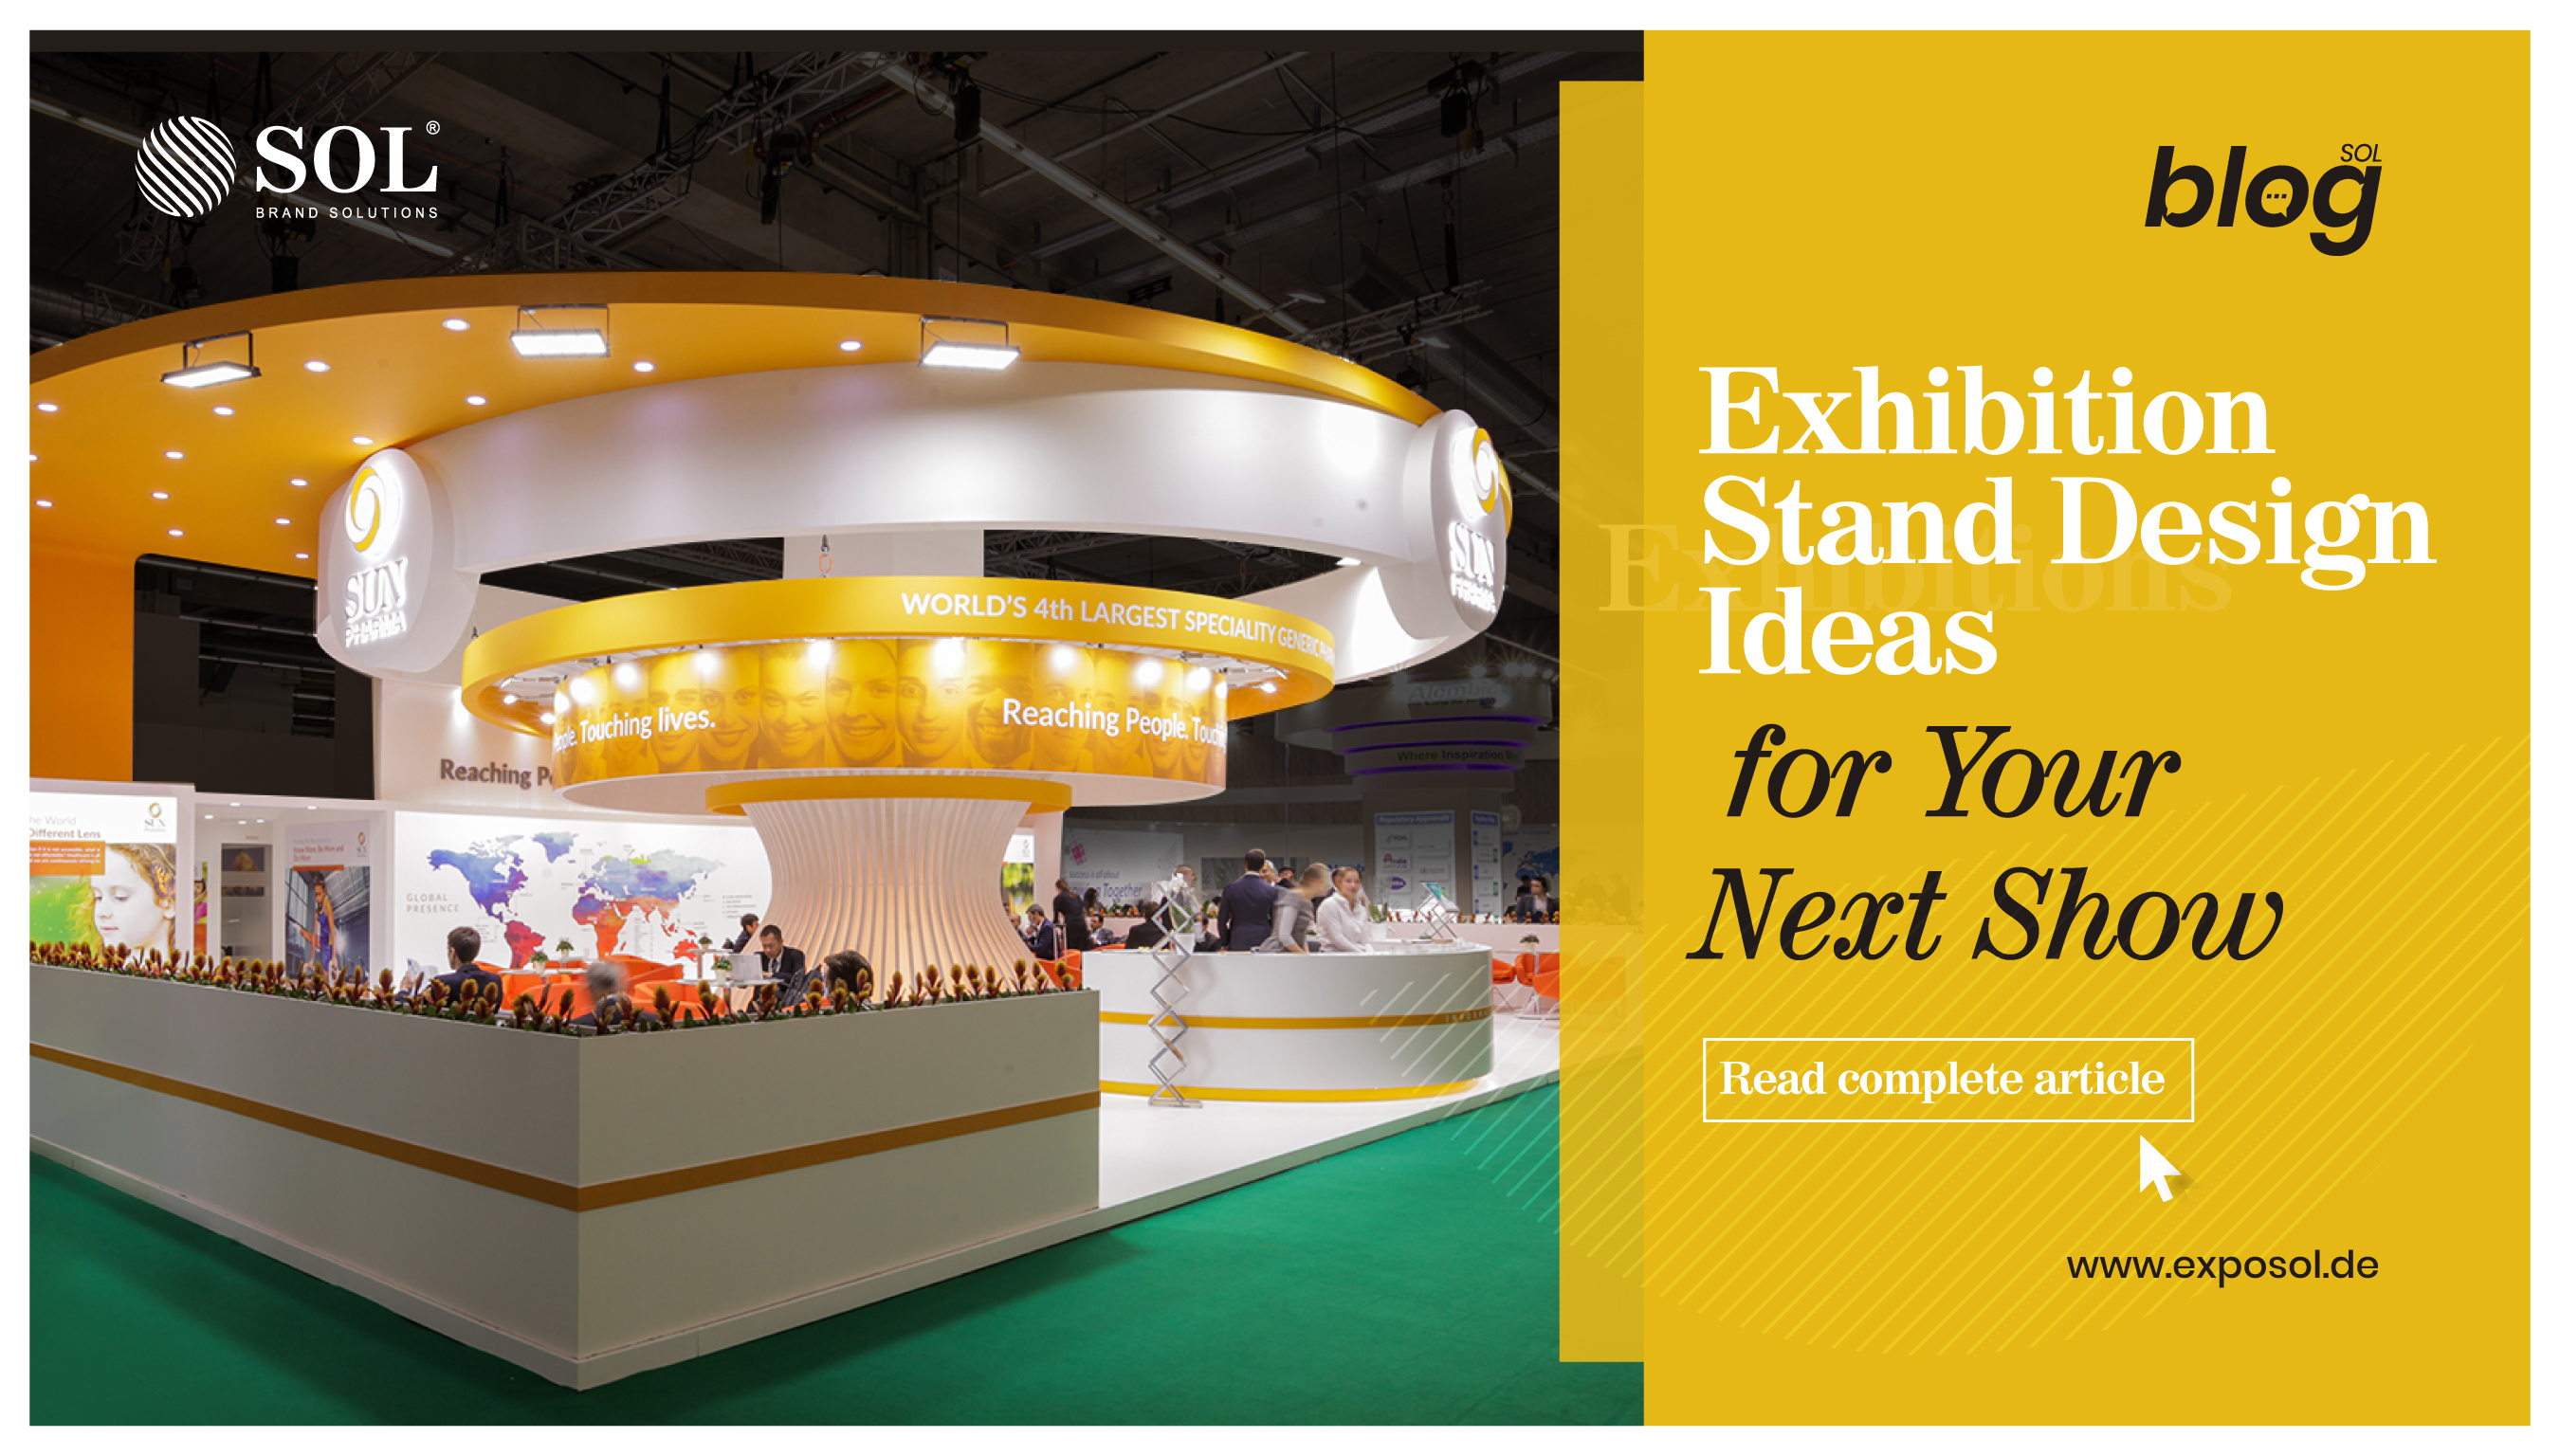 Exhibition Stand Design Ideas to Attract More Visitors